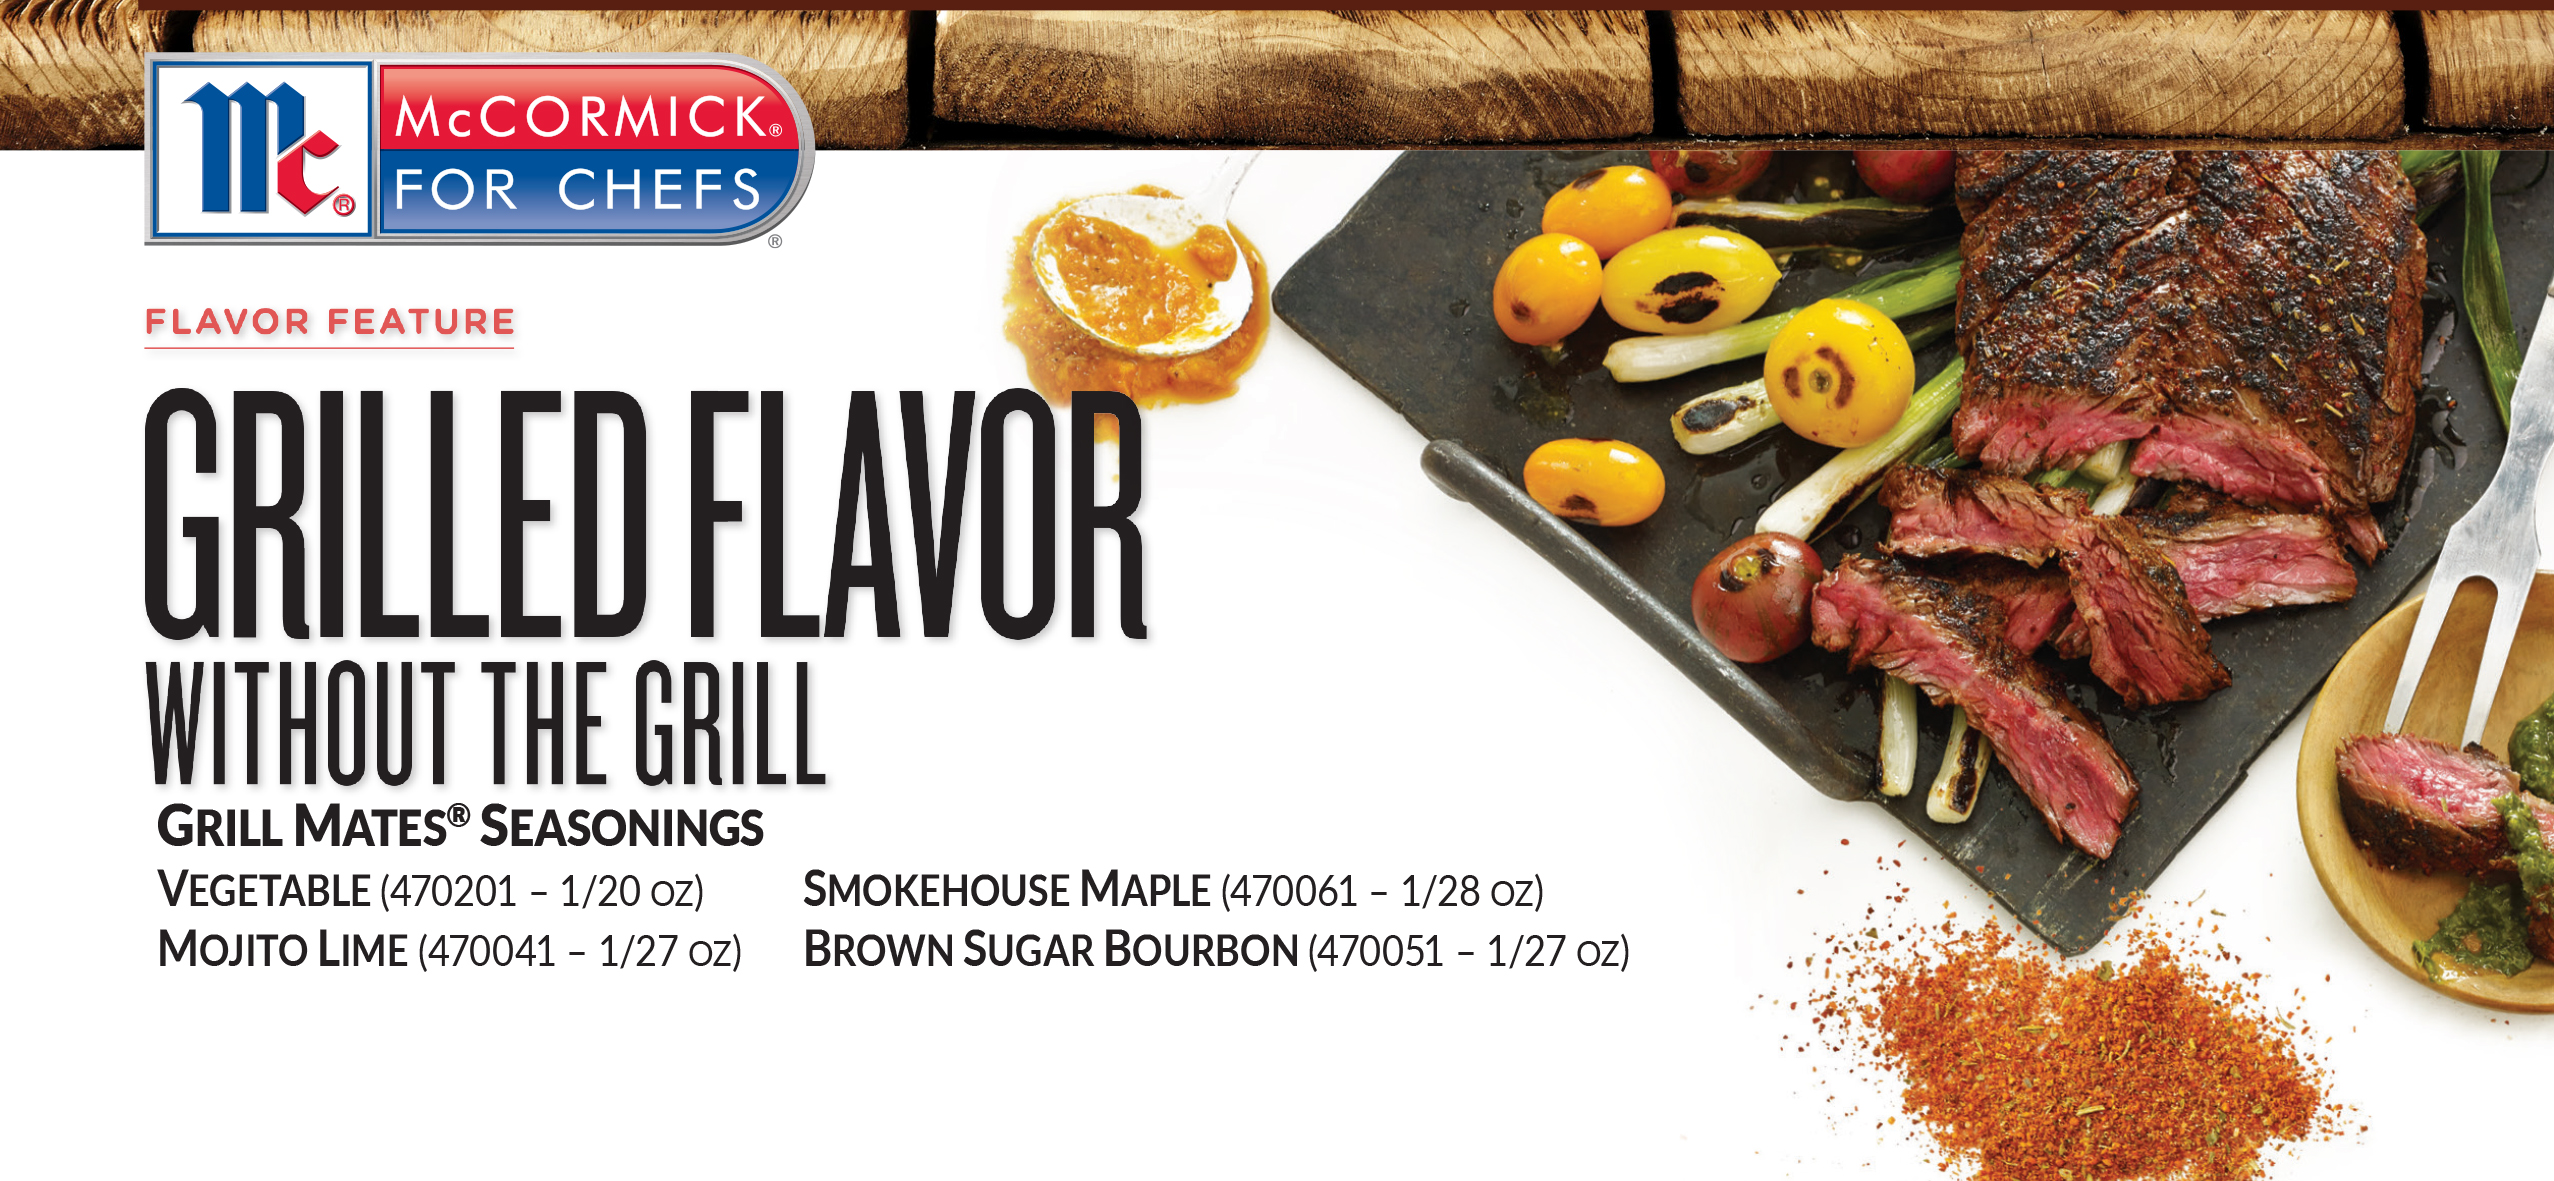 grilled-flavor-without-the-grill